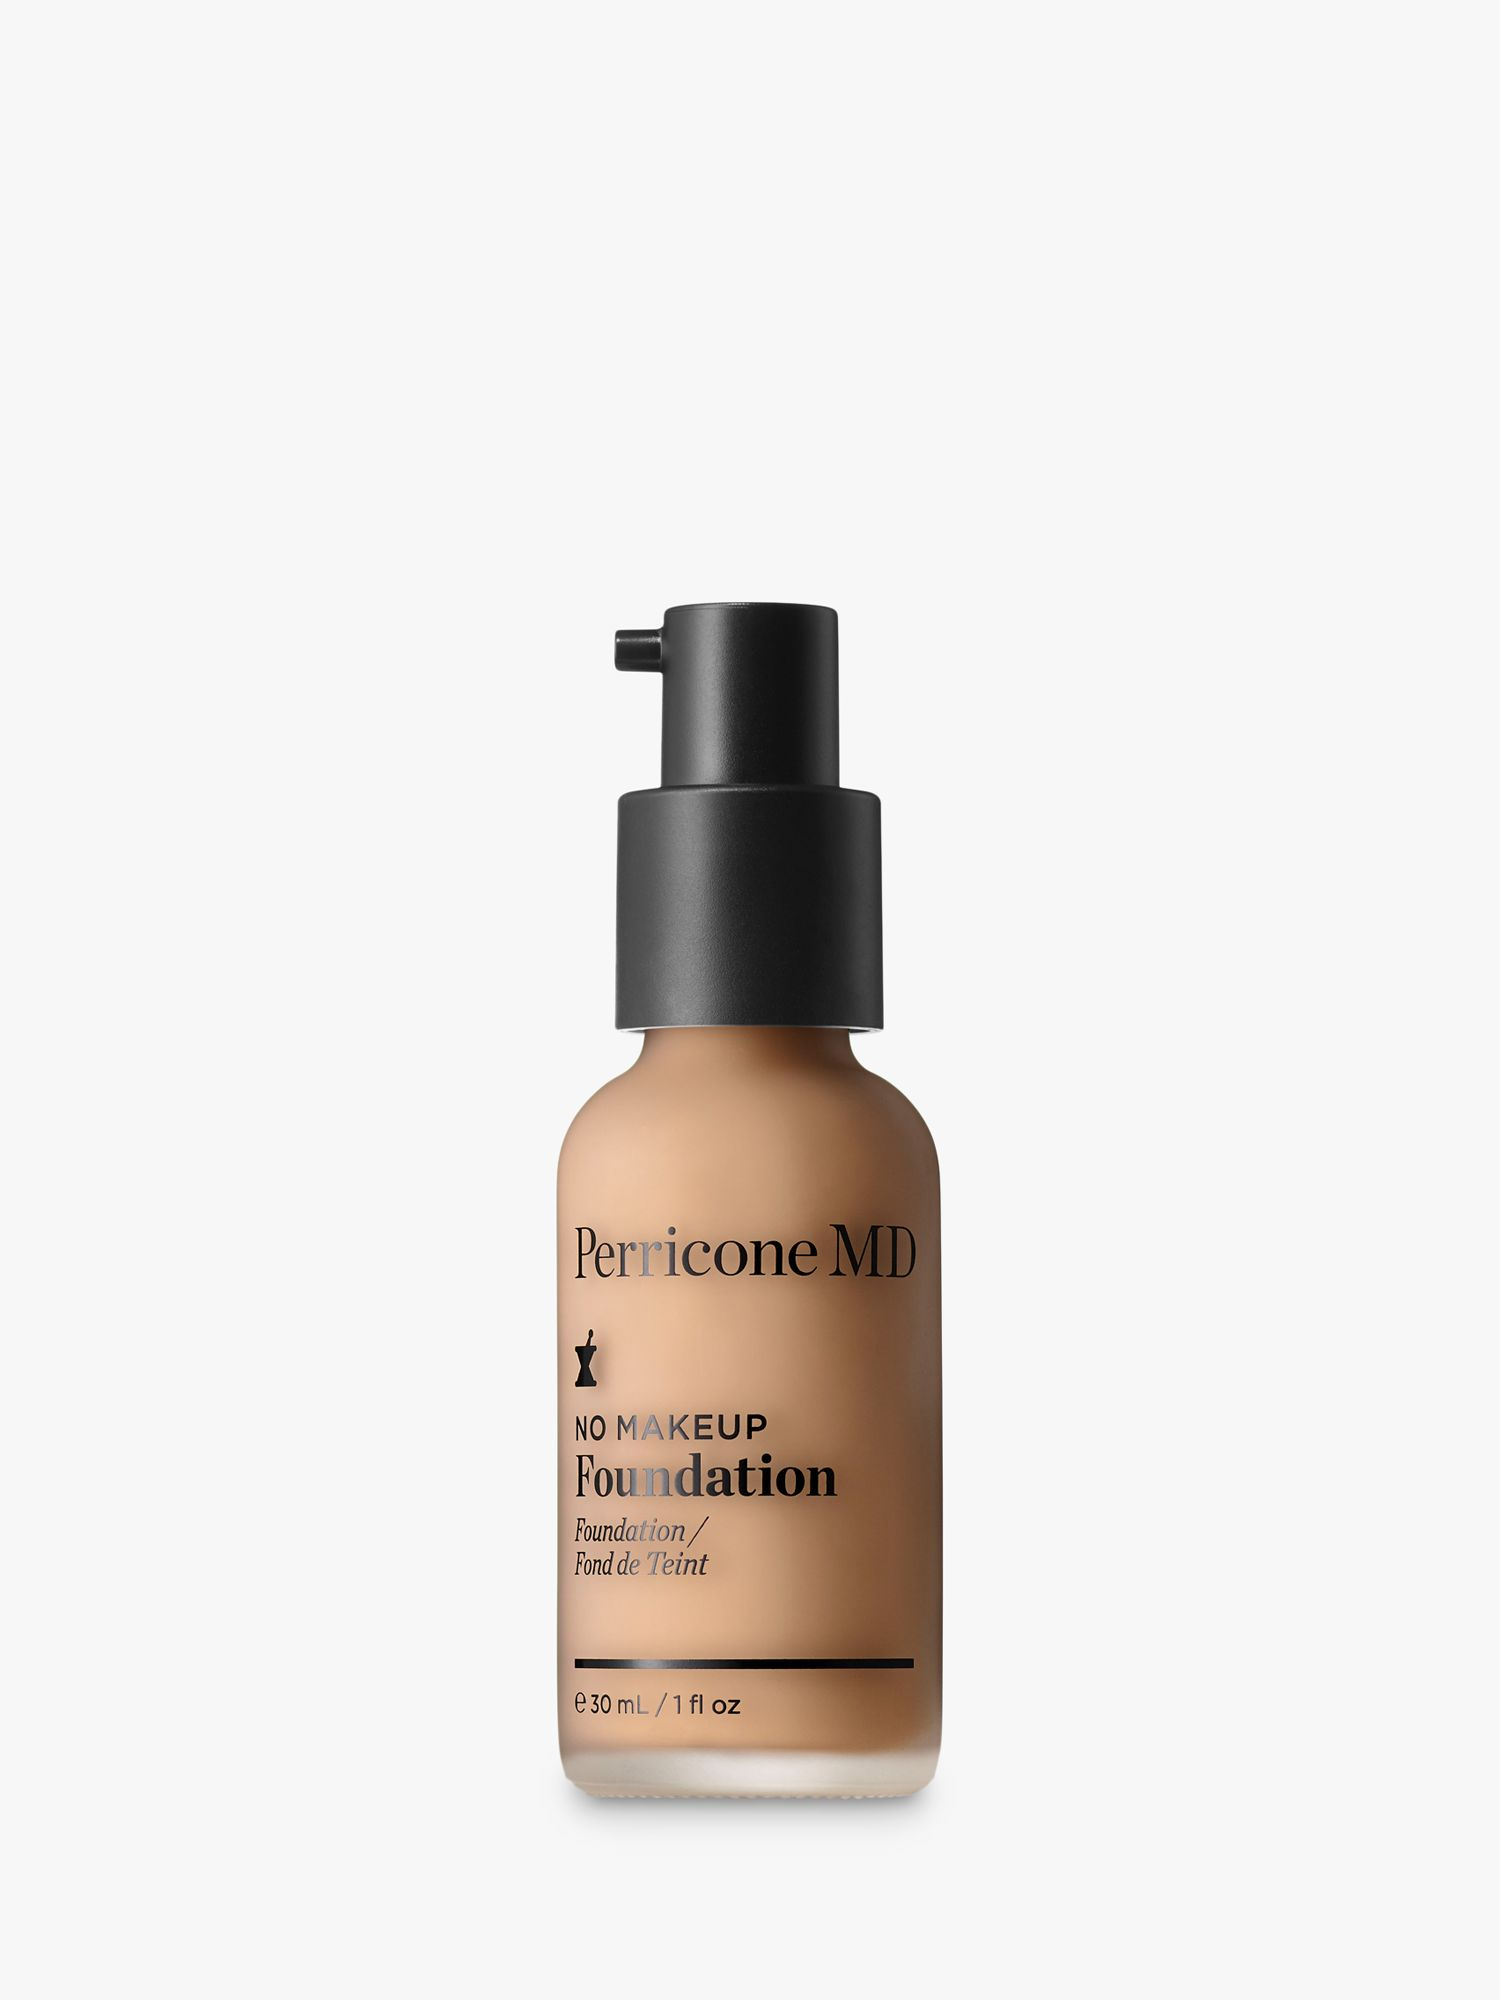 Perricone MD Perricone MD No Makeup Foundation Broad Spectrum SPF 20